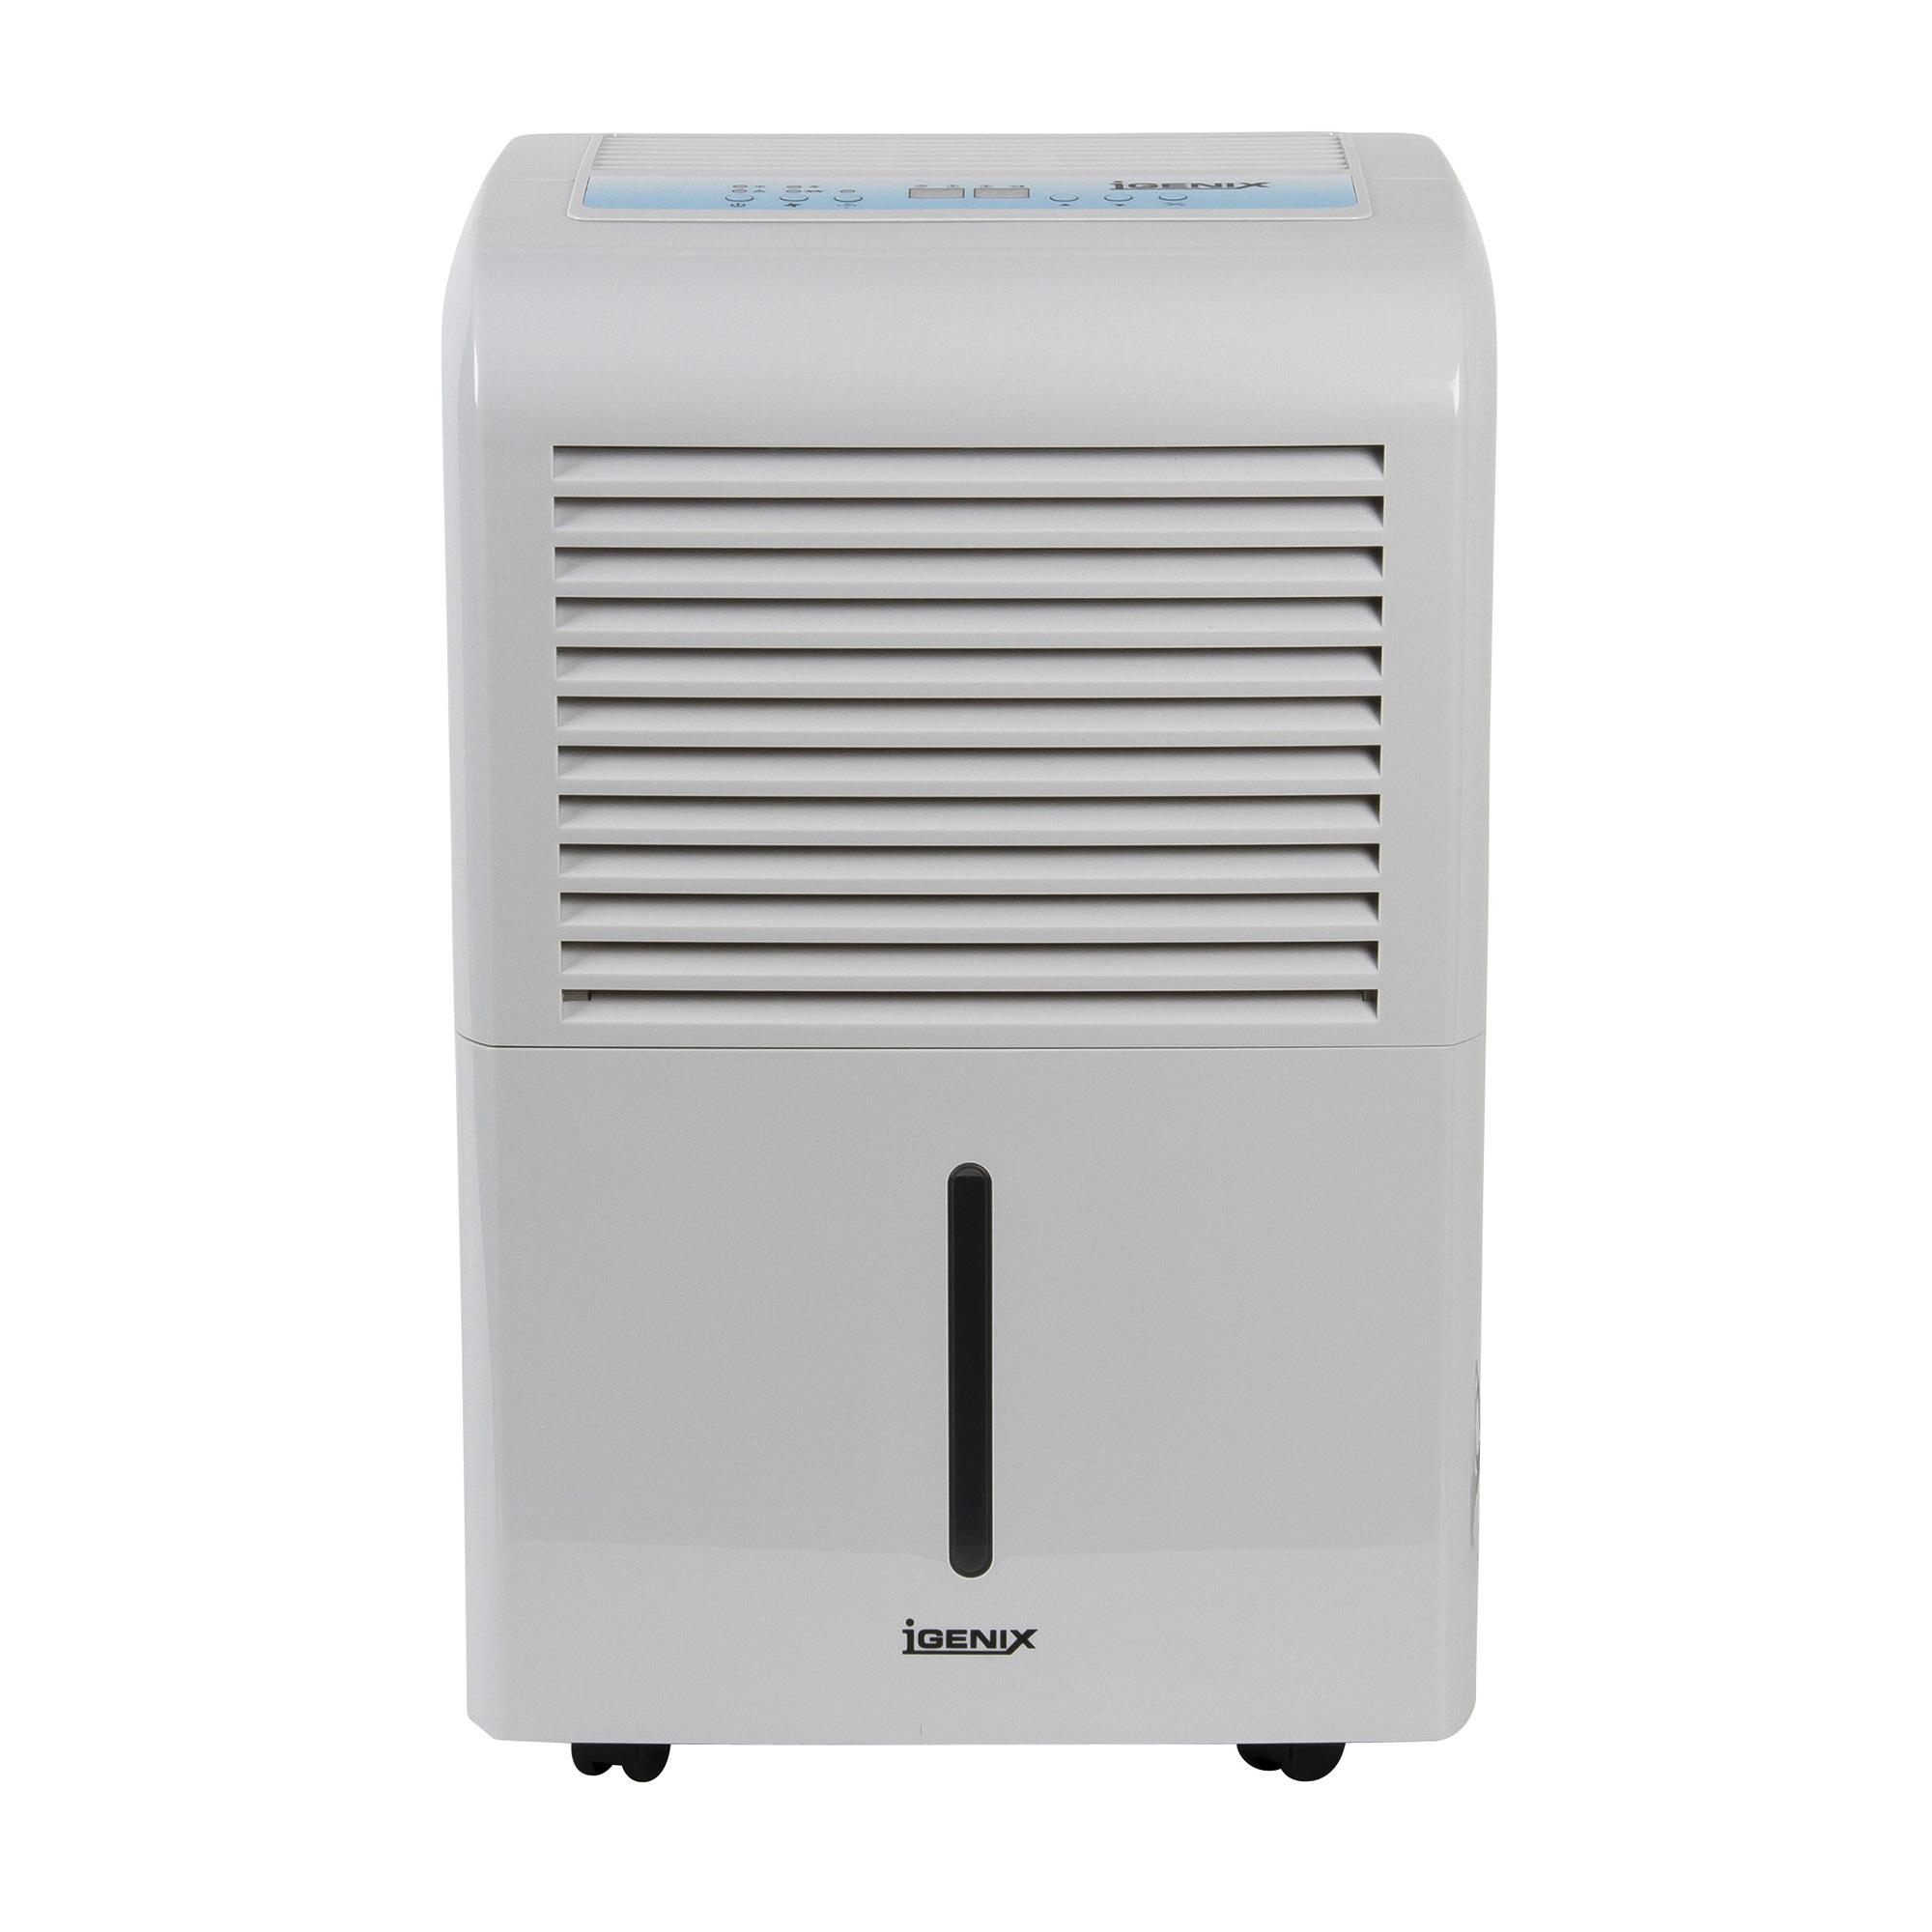 Dehumidifier 740 W 50 L White: Amazon.co.uk: Kitchen & Home #486A83